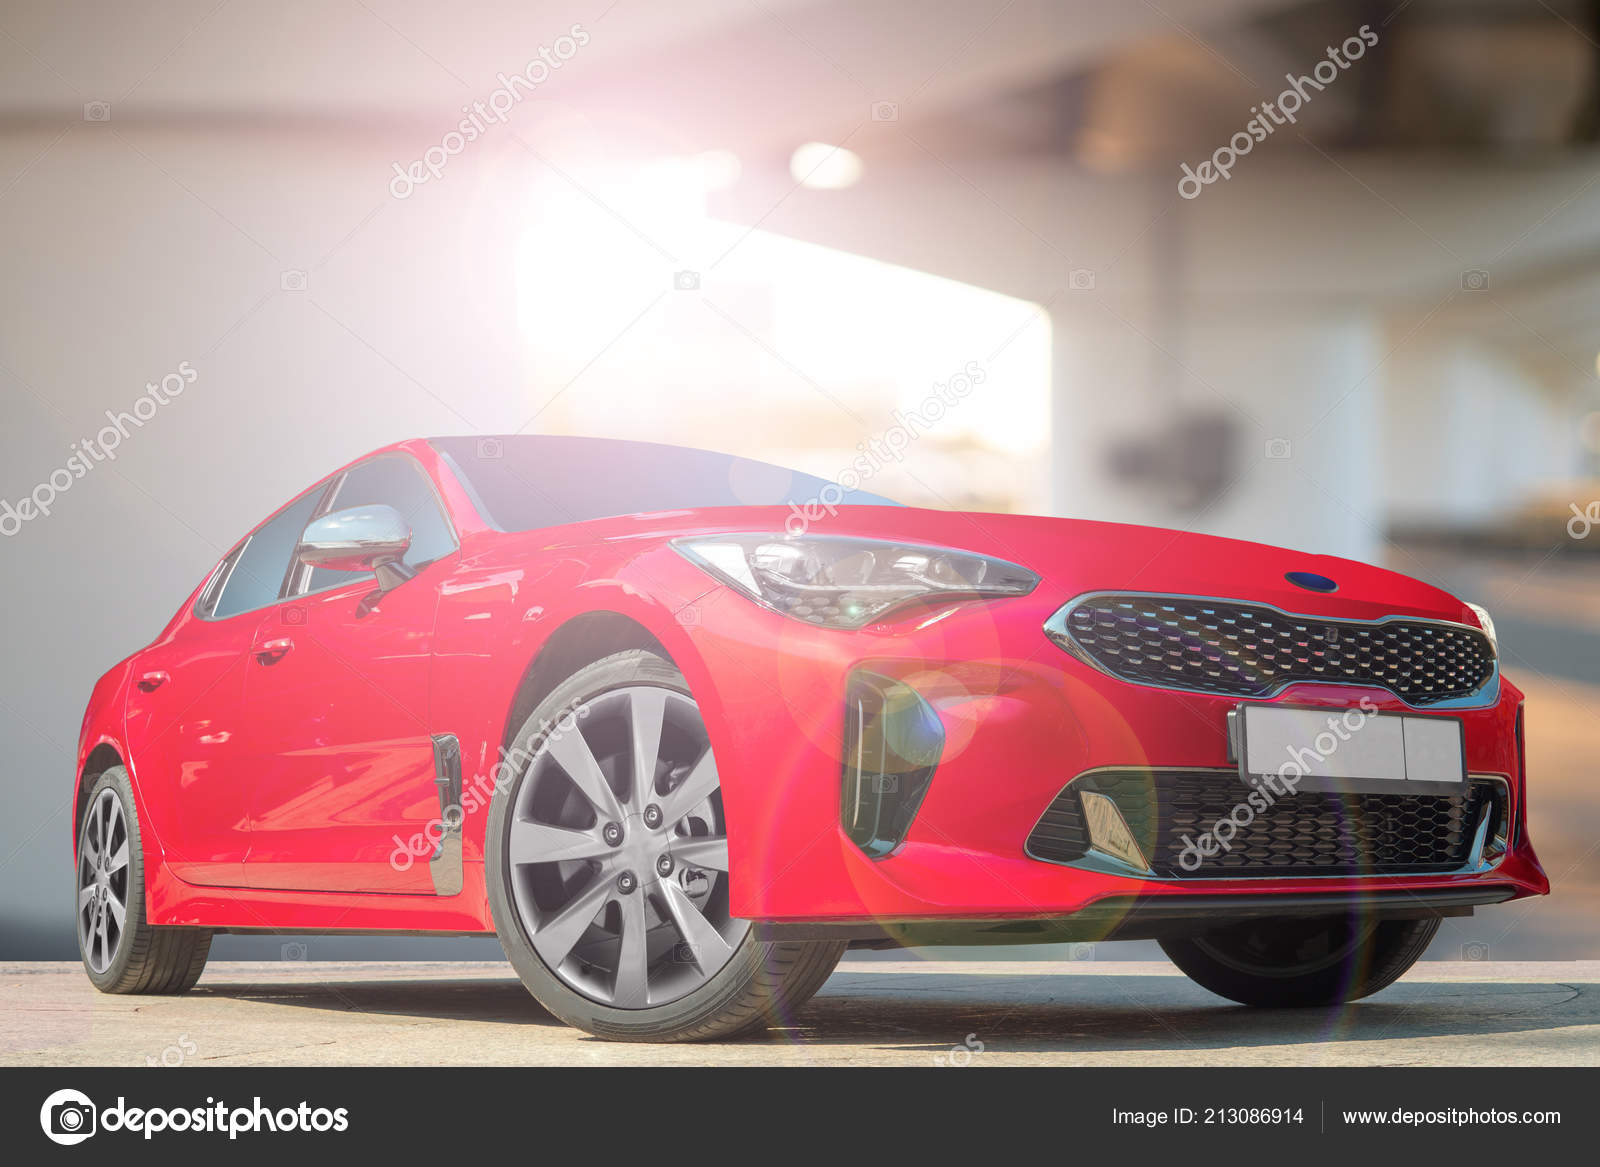 Red Car Background City Environment Stylish Modern Bright Image Car Stock Editorial Photo C Sandipruel 213086914